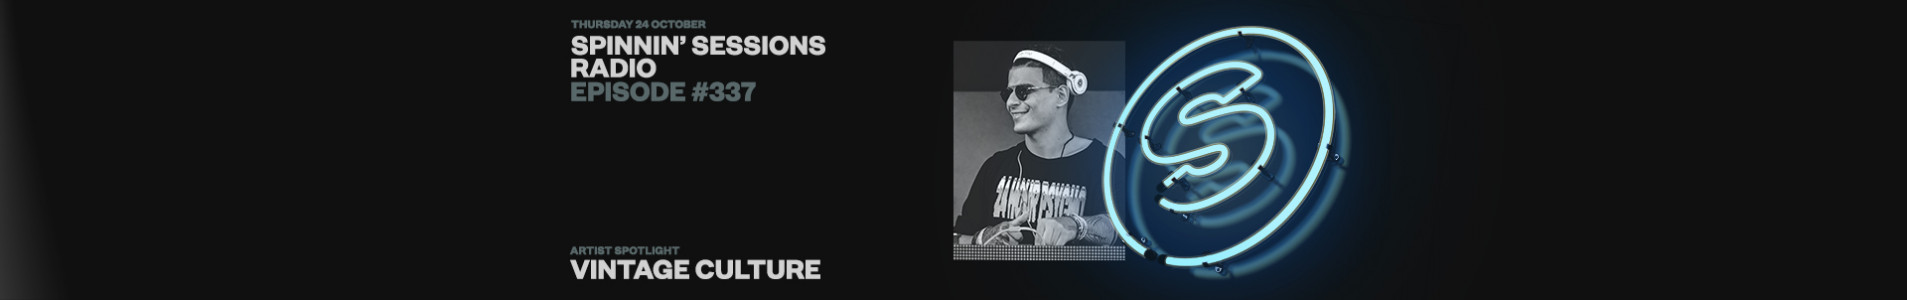 Listen to a brand new episode of Spinnin' Sessions radio